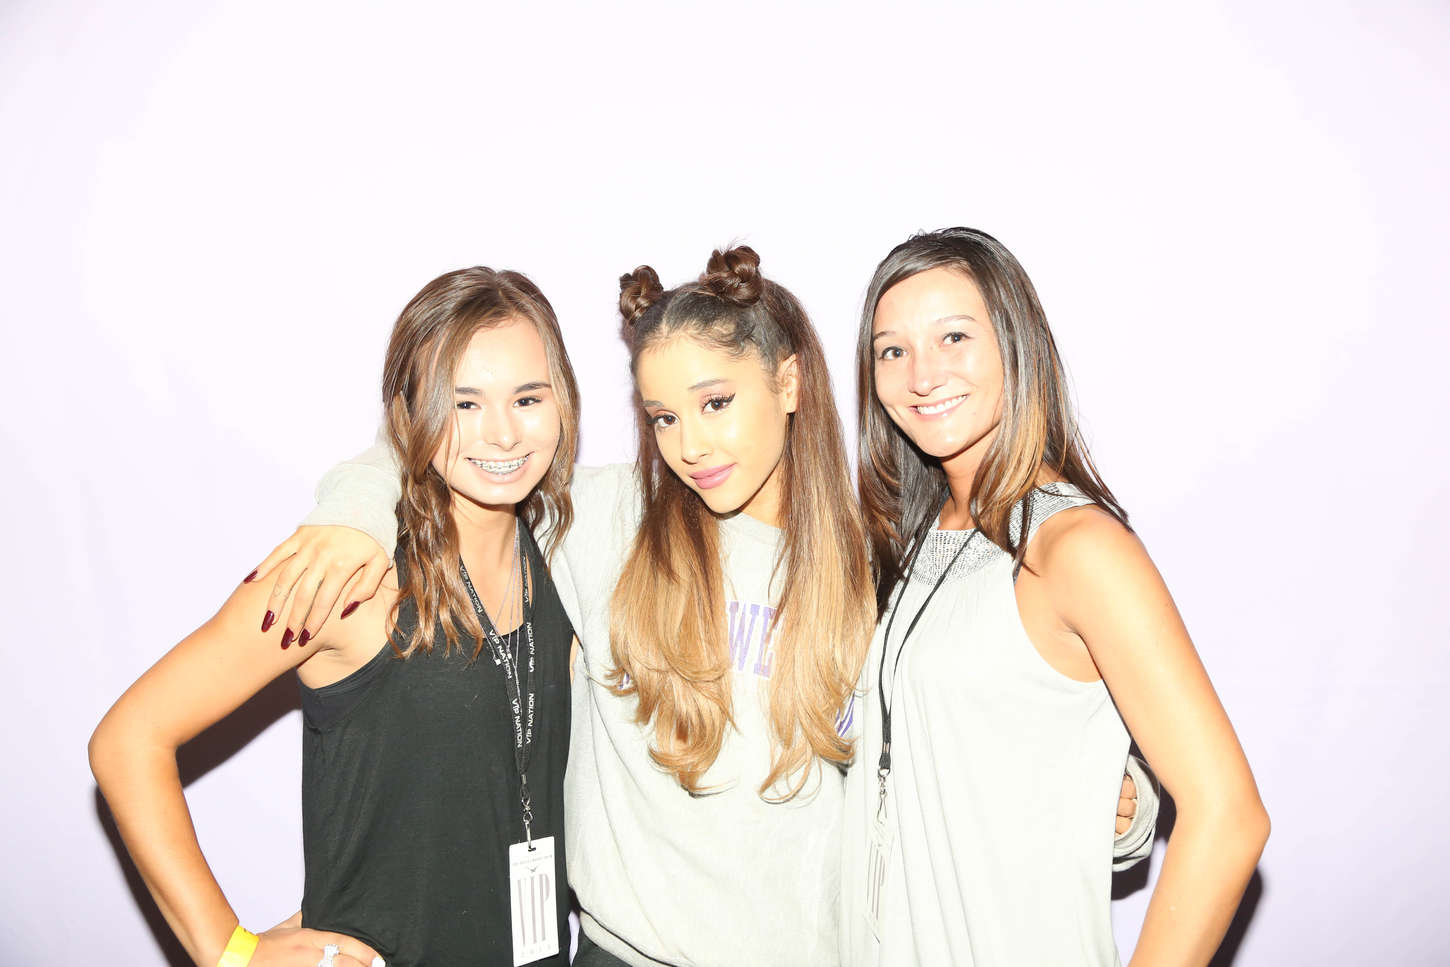 Ariana grande meet and greet in boise 12 gotceleb ariana grande meet and greet in boise 12 full size m4hsunfo